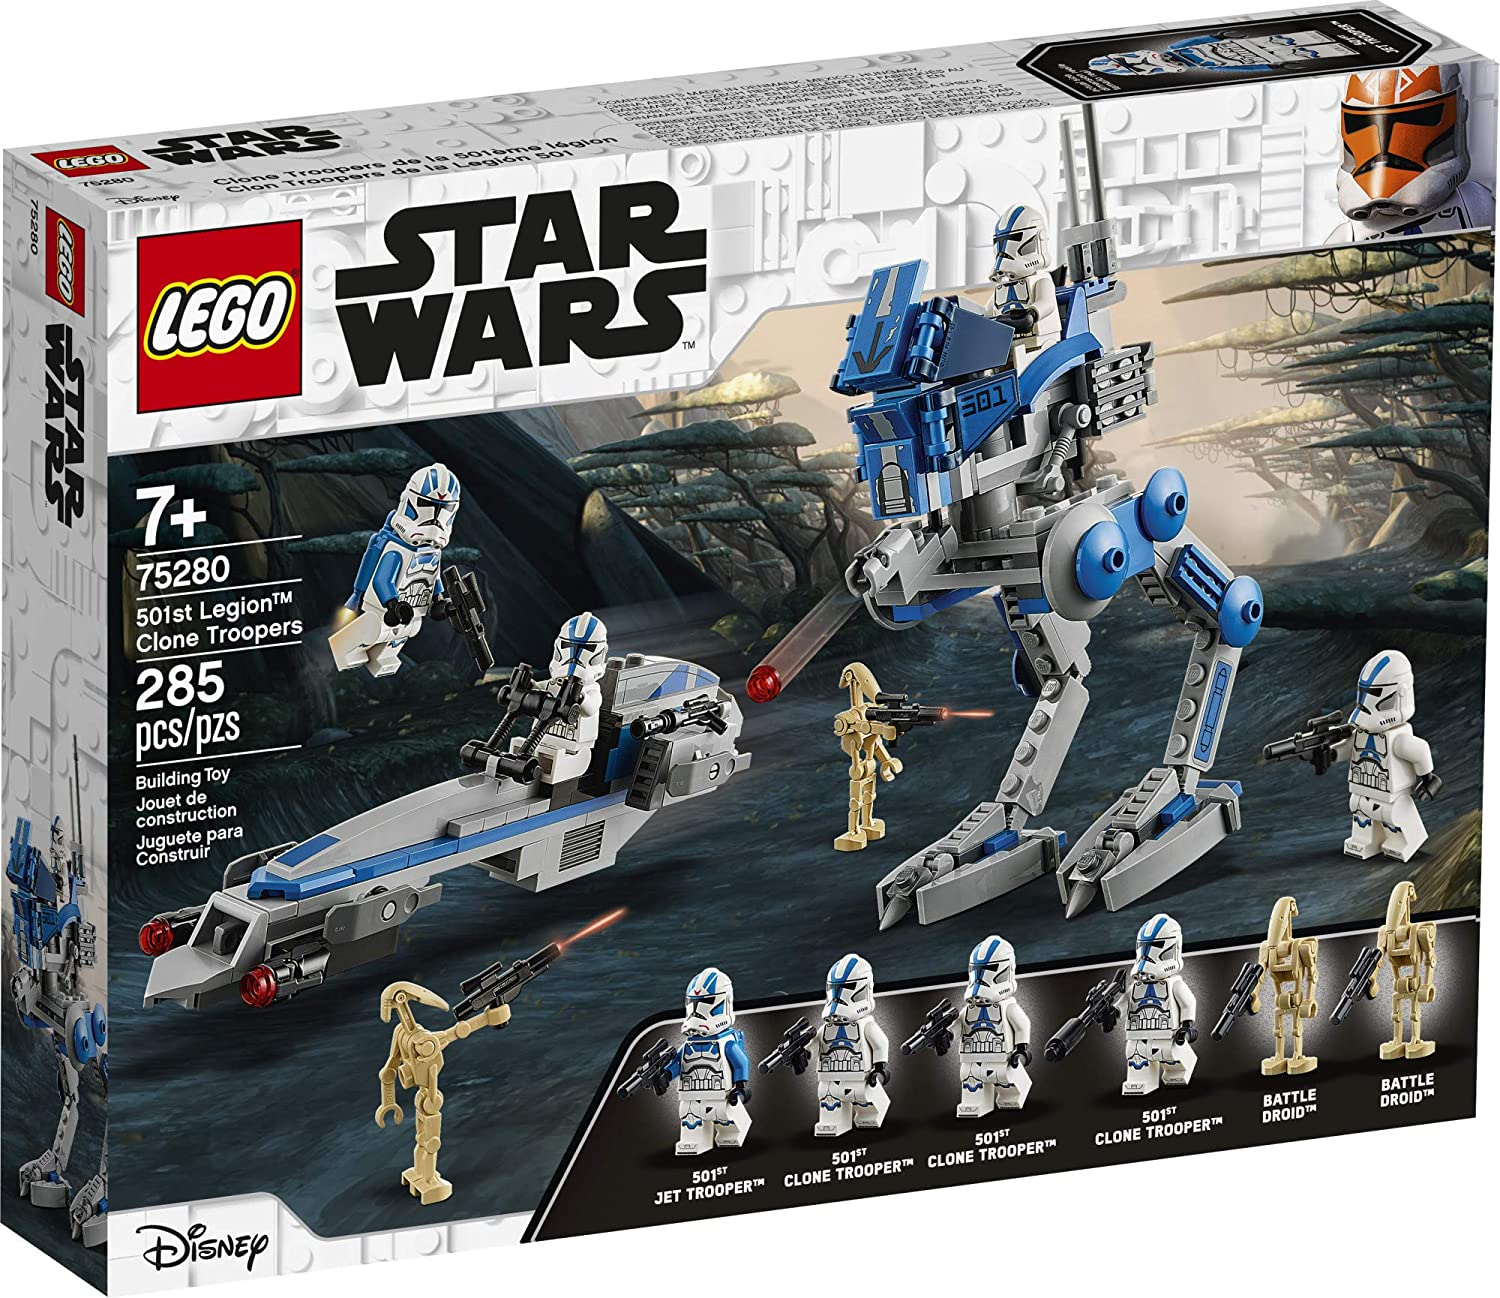 LEGO Star Wars 501st Legion Clone Troopers 75280 Building Kit, New 2020 (285 Pieces)